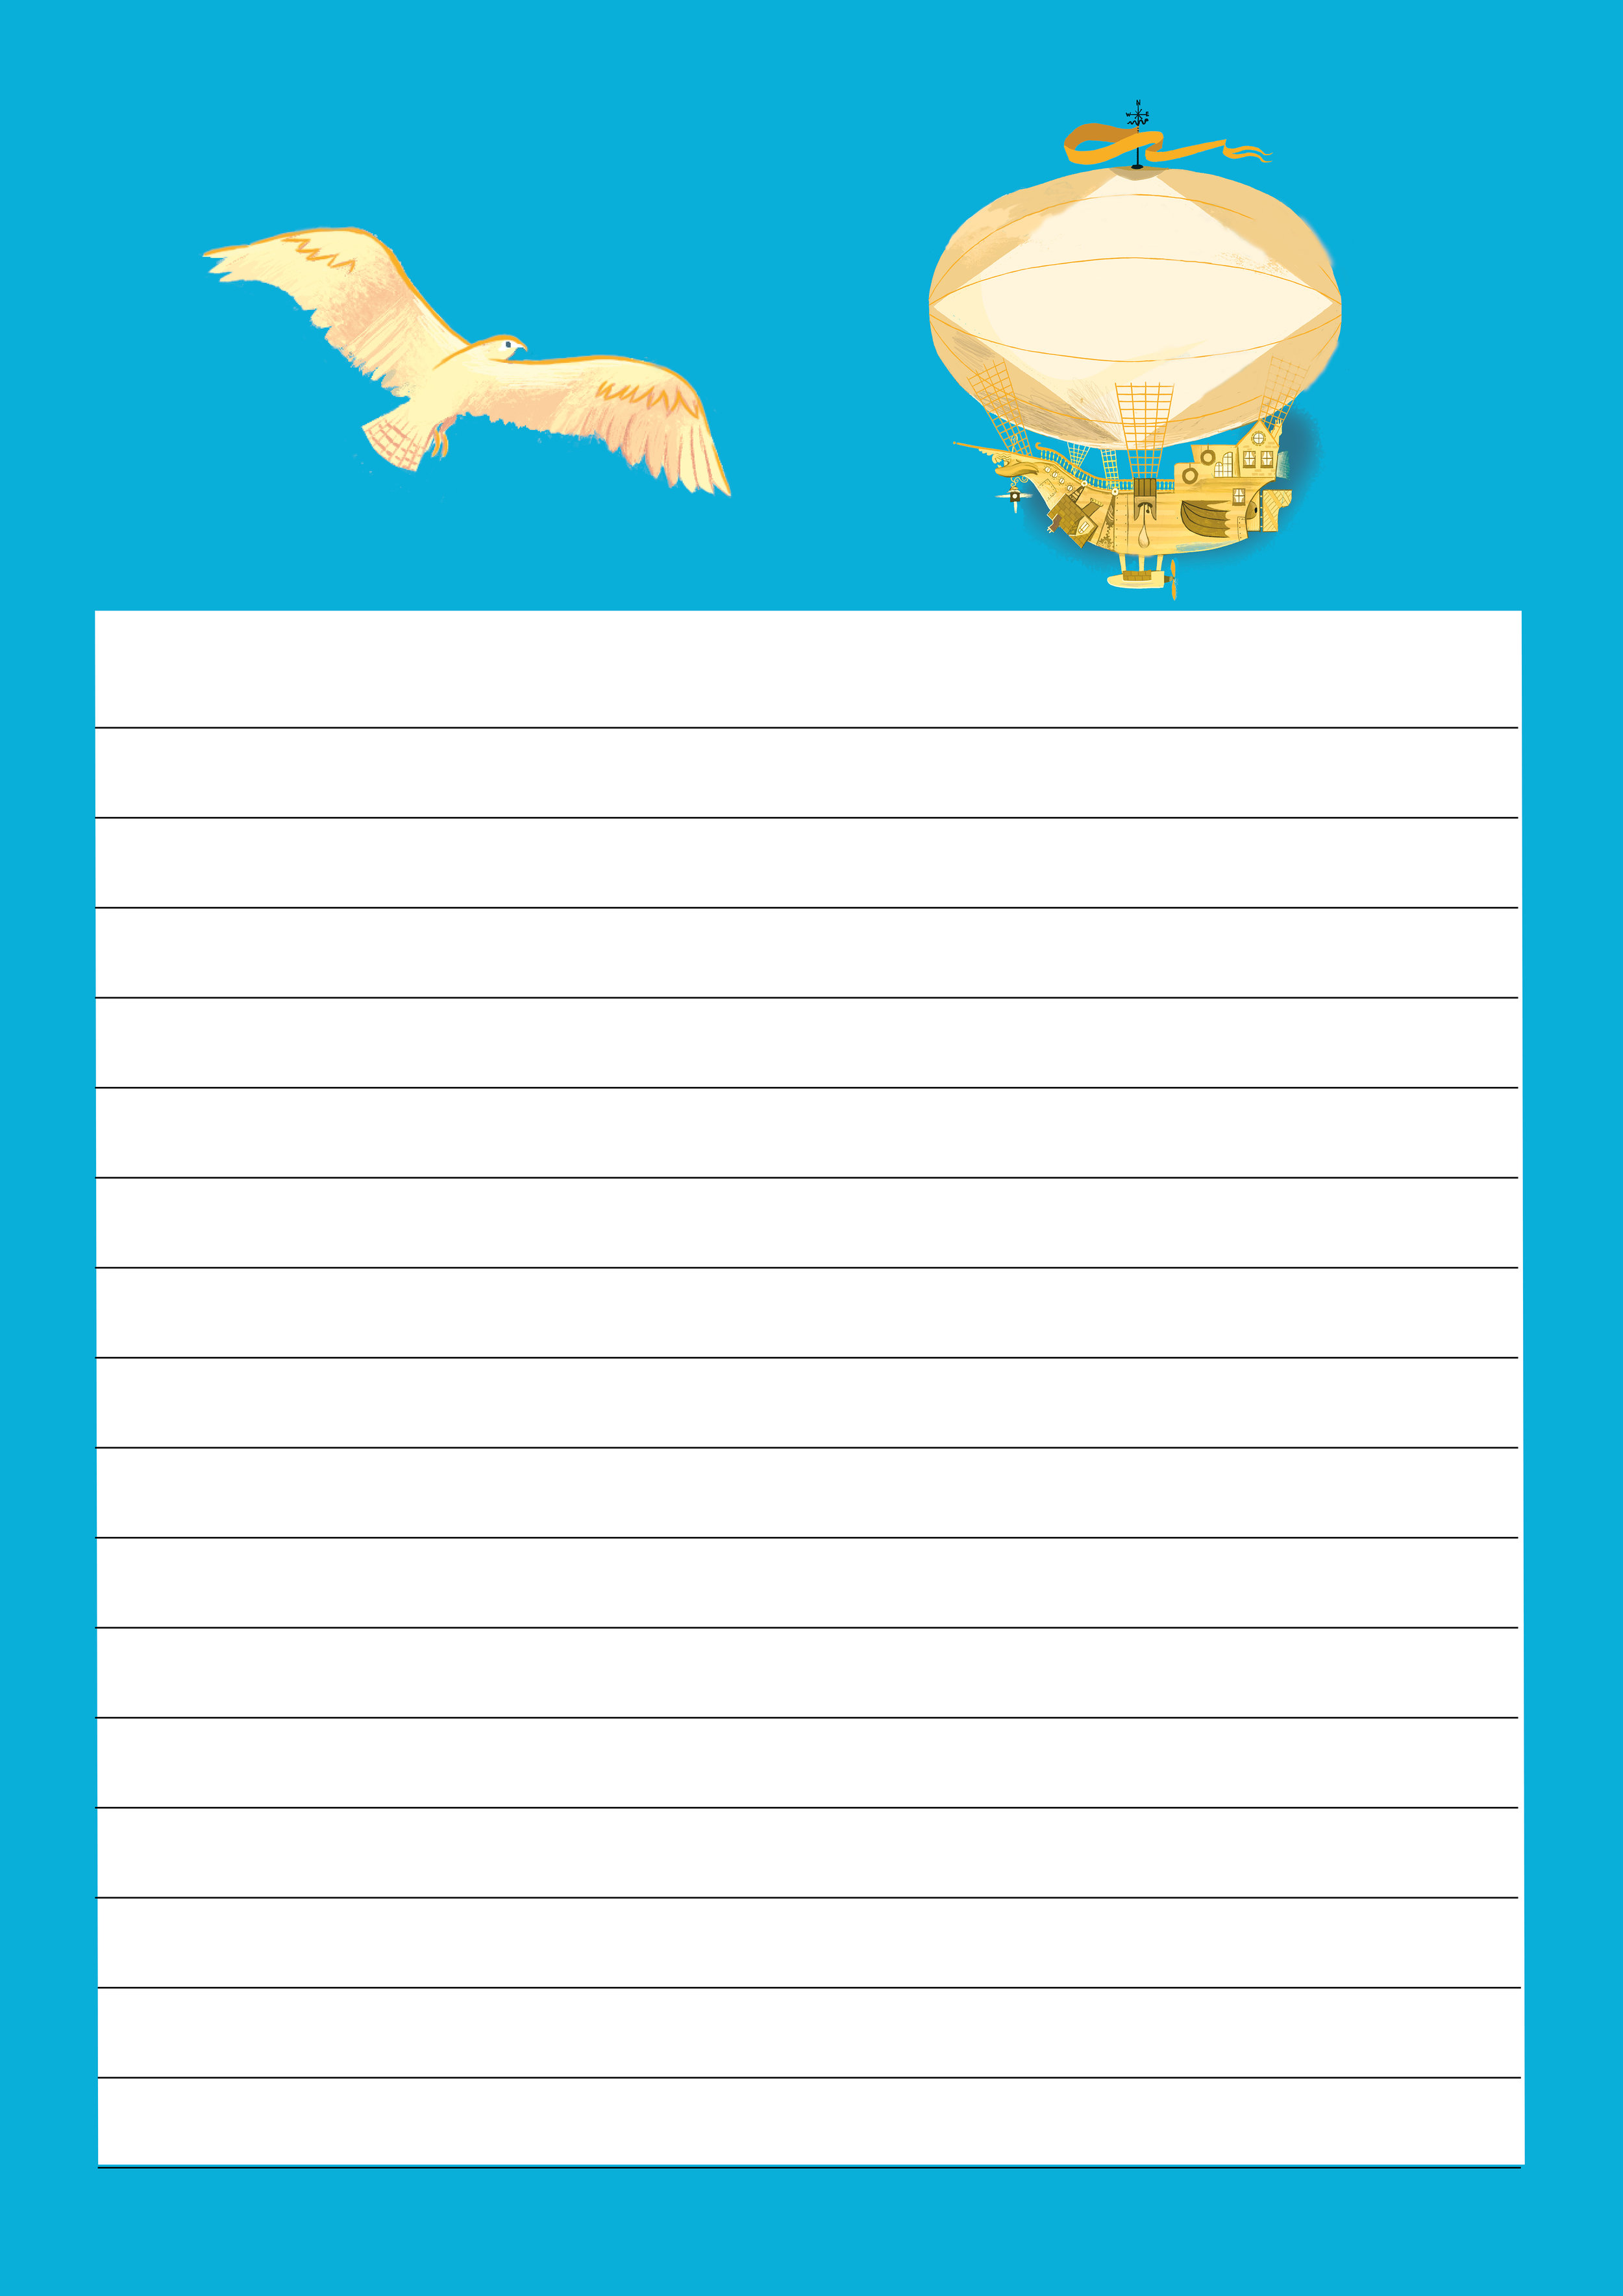 Download Brightstorm lined paper template > -